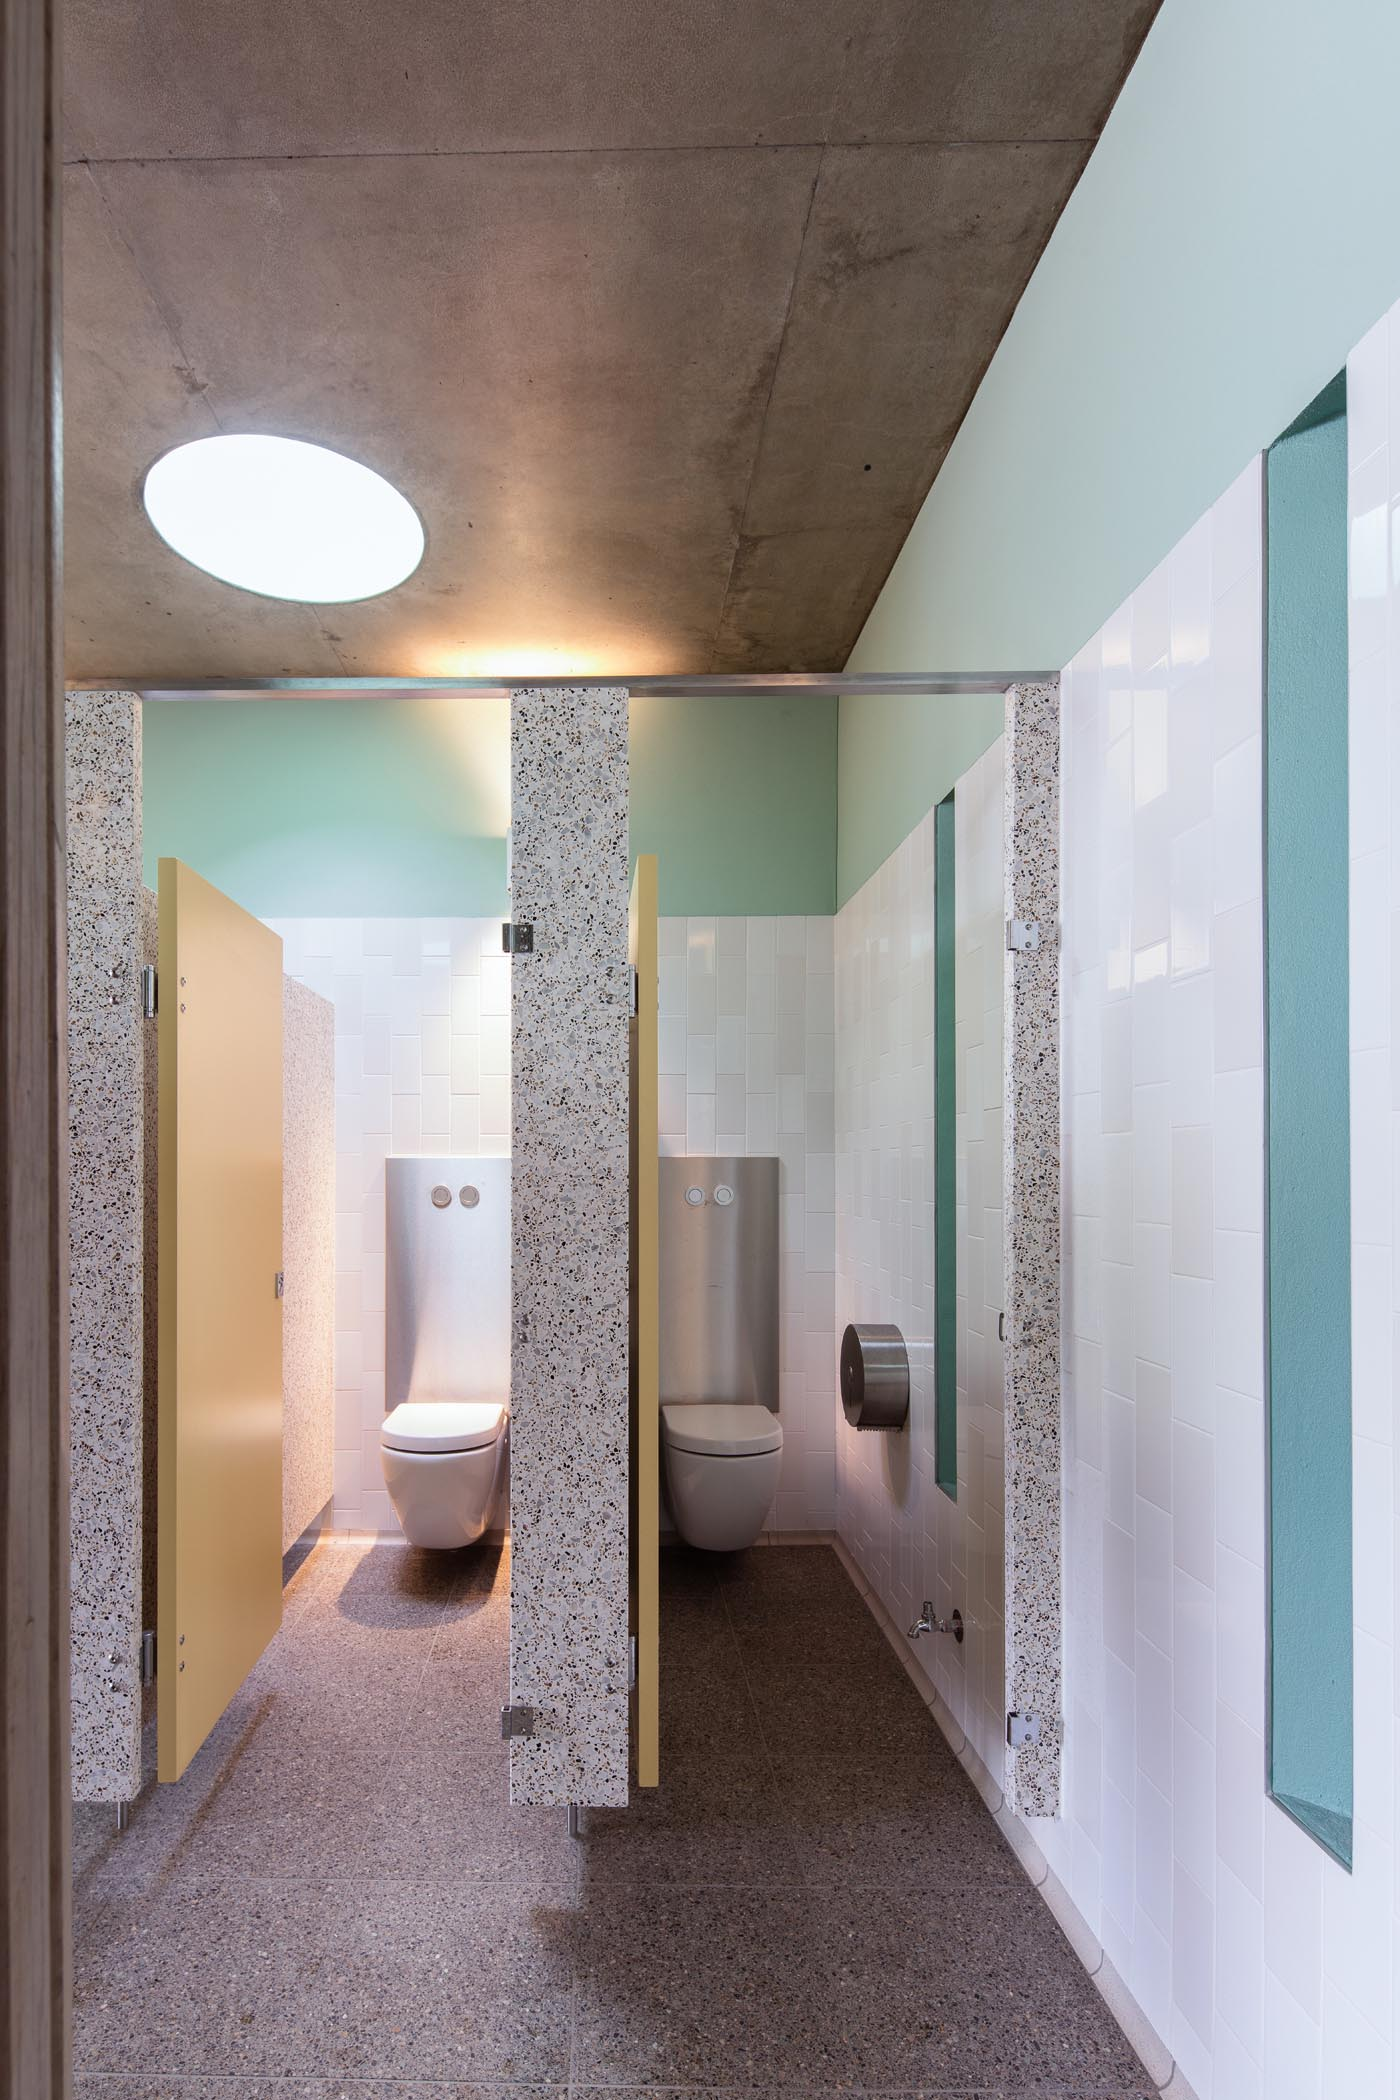 North Bondi Amenities, a public project by award winning Sam Crawford Architects. The clean cubicles are a pleasure to use.